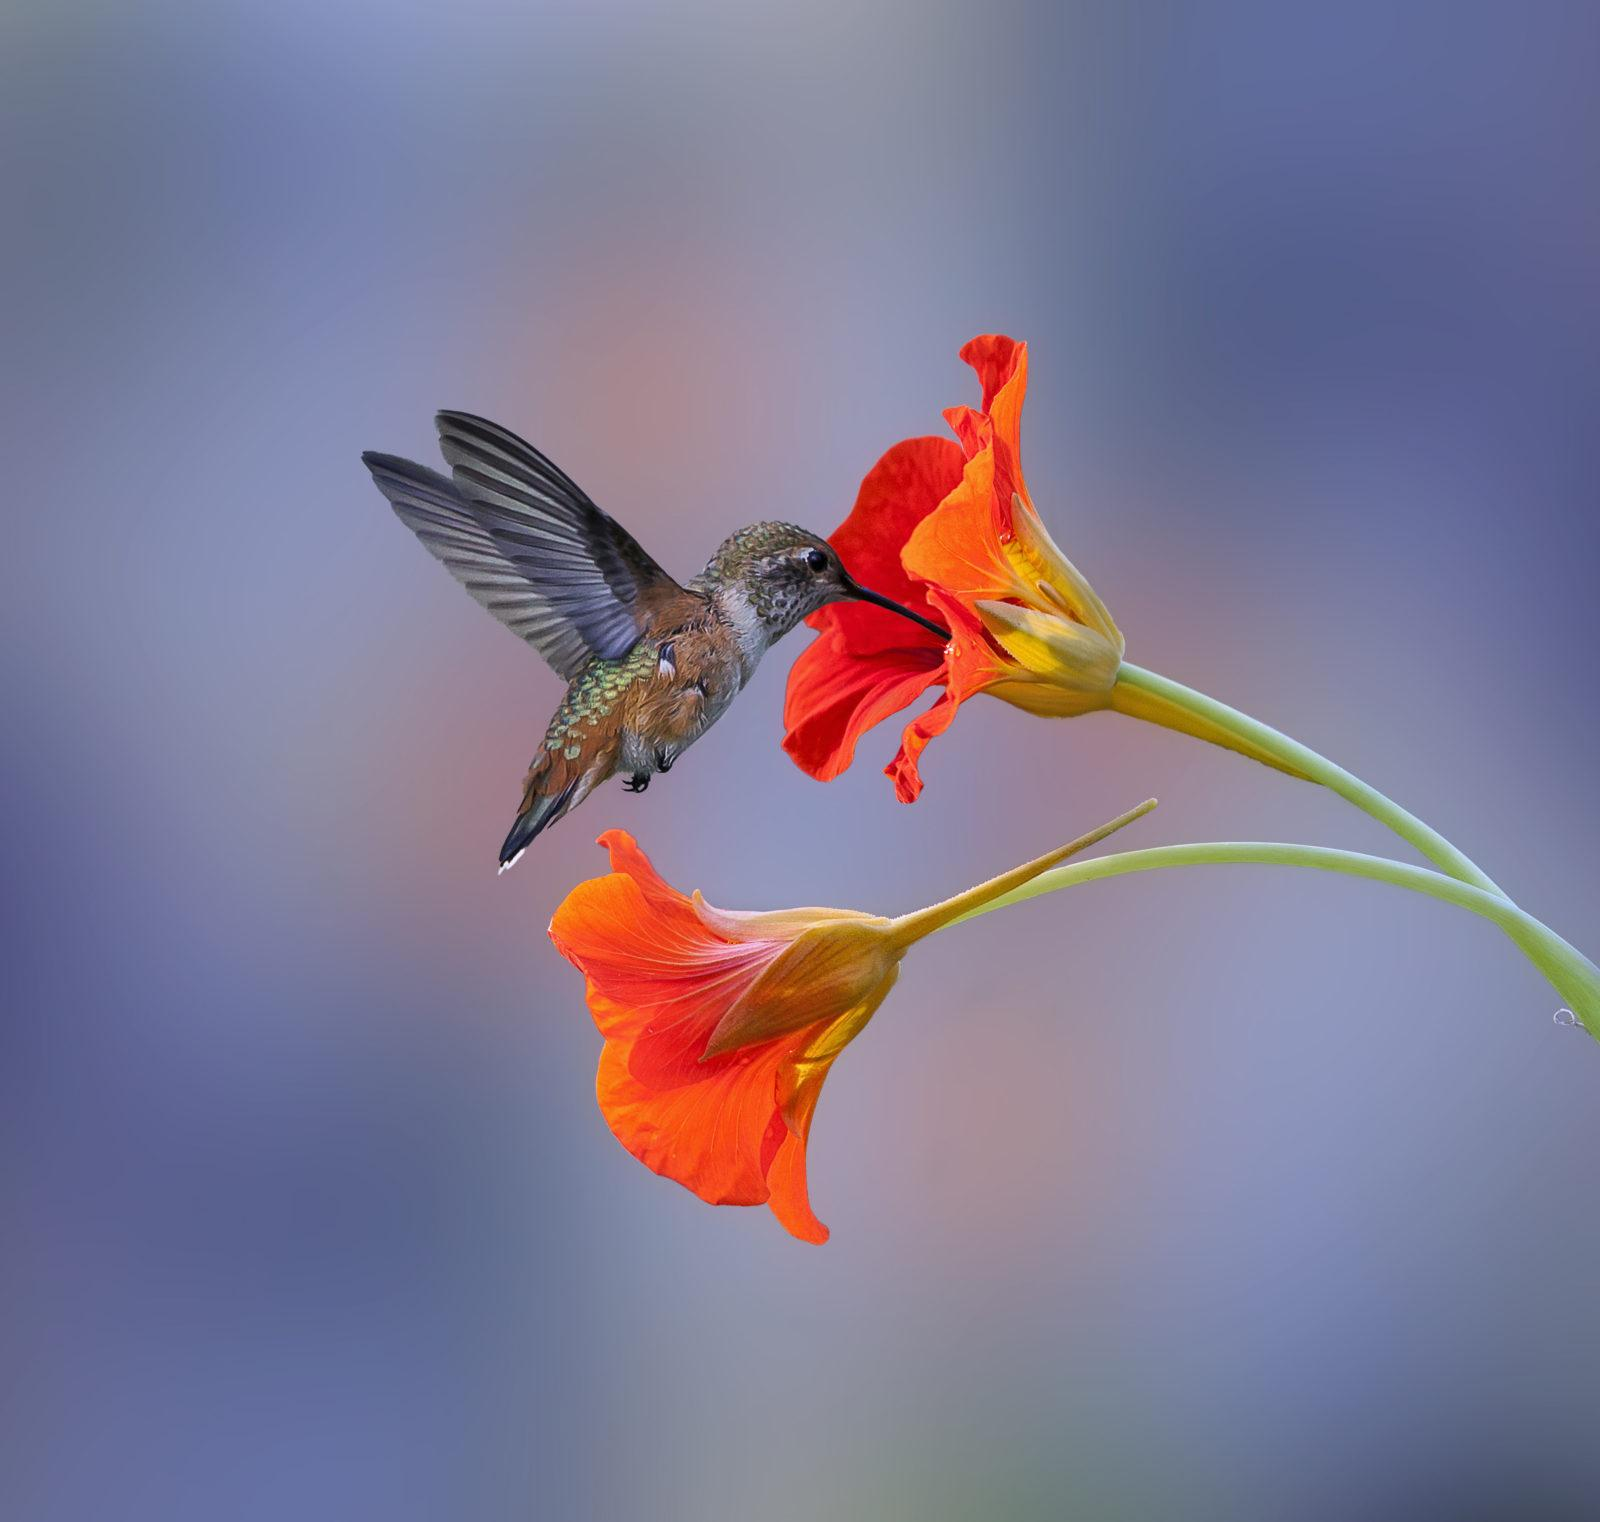 Congratulations to Denis Dessoliers for winning the Beautiful Bokeh Assignment.